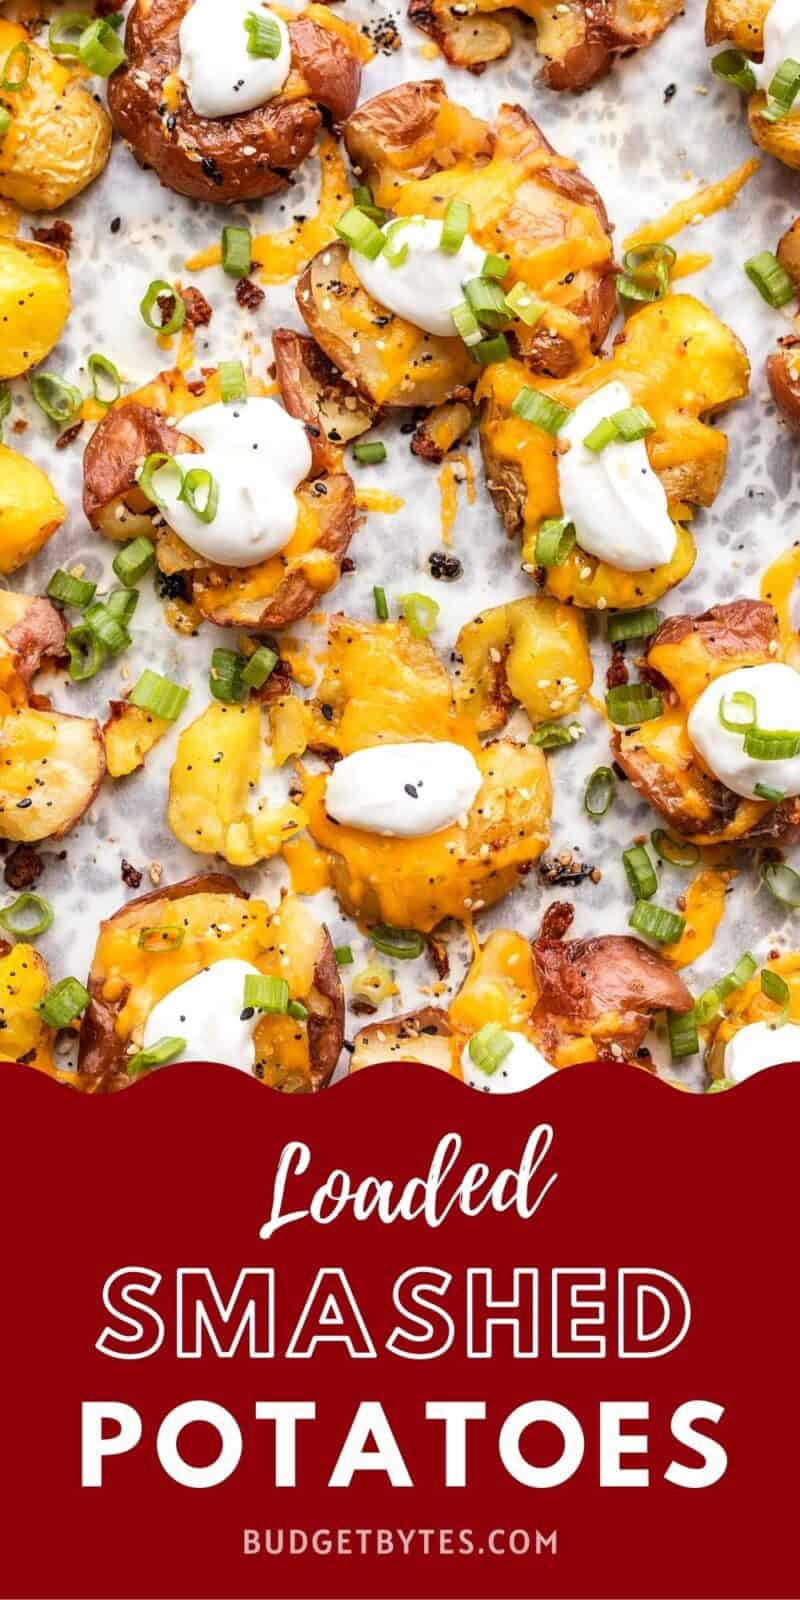 overhead view of loaded smashed potatoes on a baking sheet, title text at the bottom